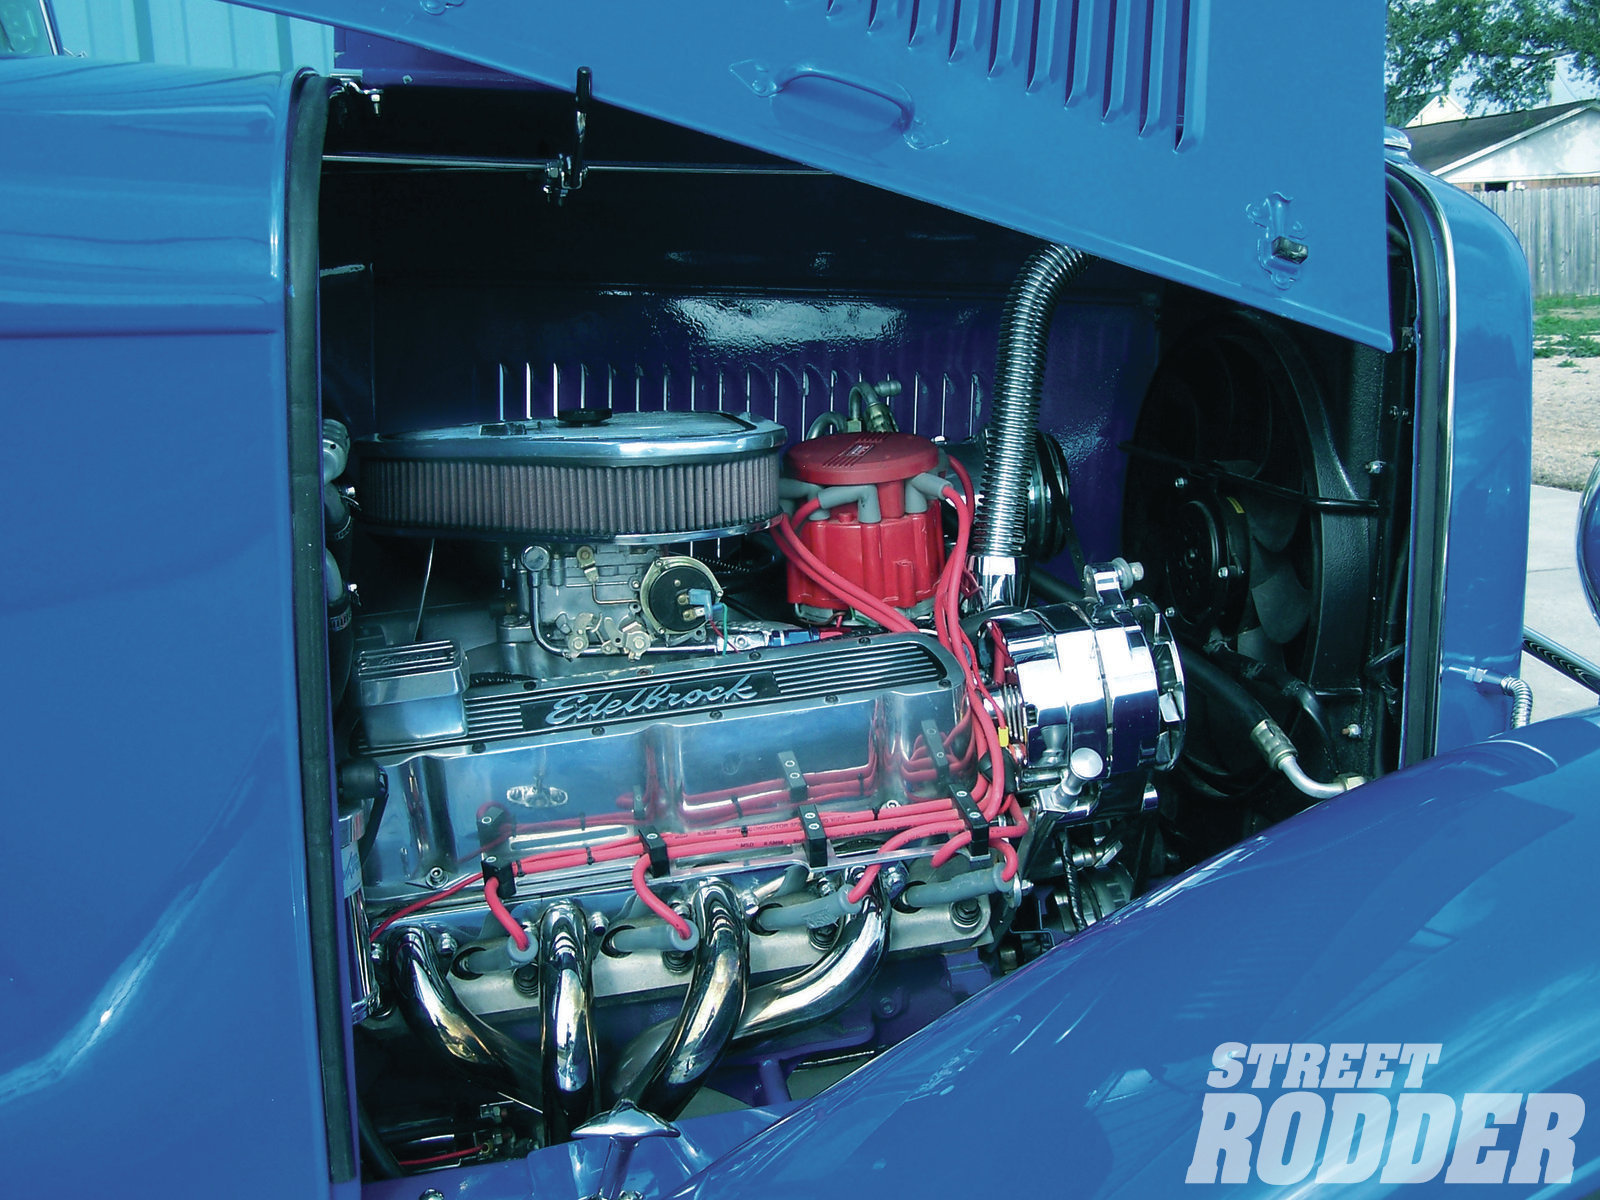 Determined to have a Ford in a Ford, Bill had a 302 equipped with a SCAT rotating assembly and backed it to a Tremec TKO 500 transmission. Bill didn't need a huge engine—when he gets the itch he just climbs into his Dodge Viper!